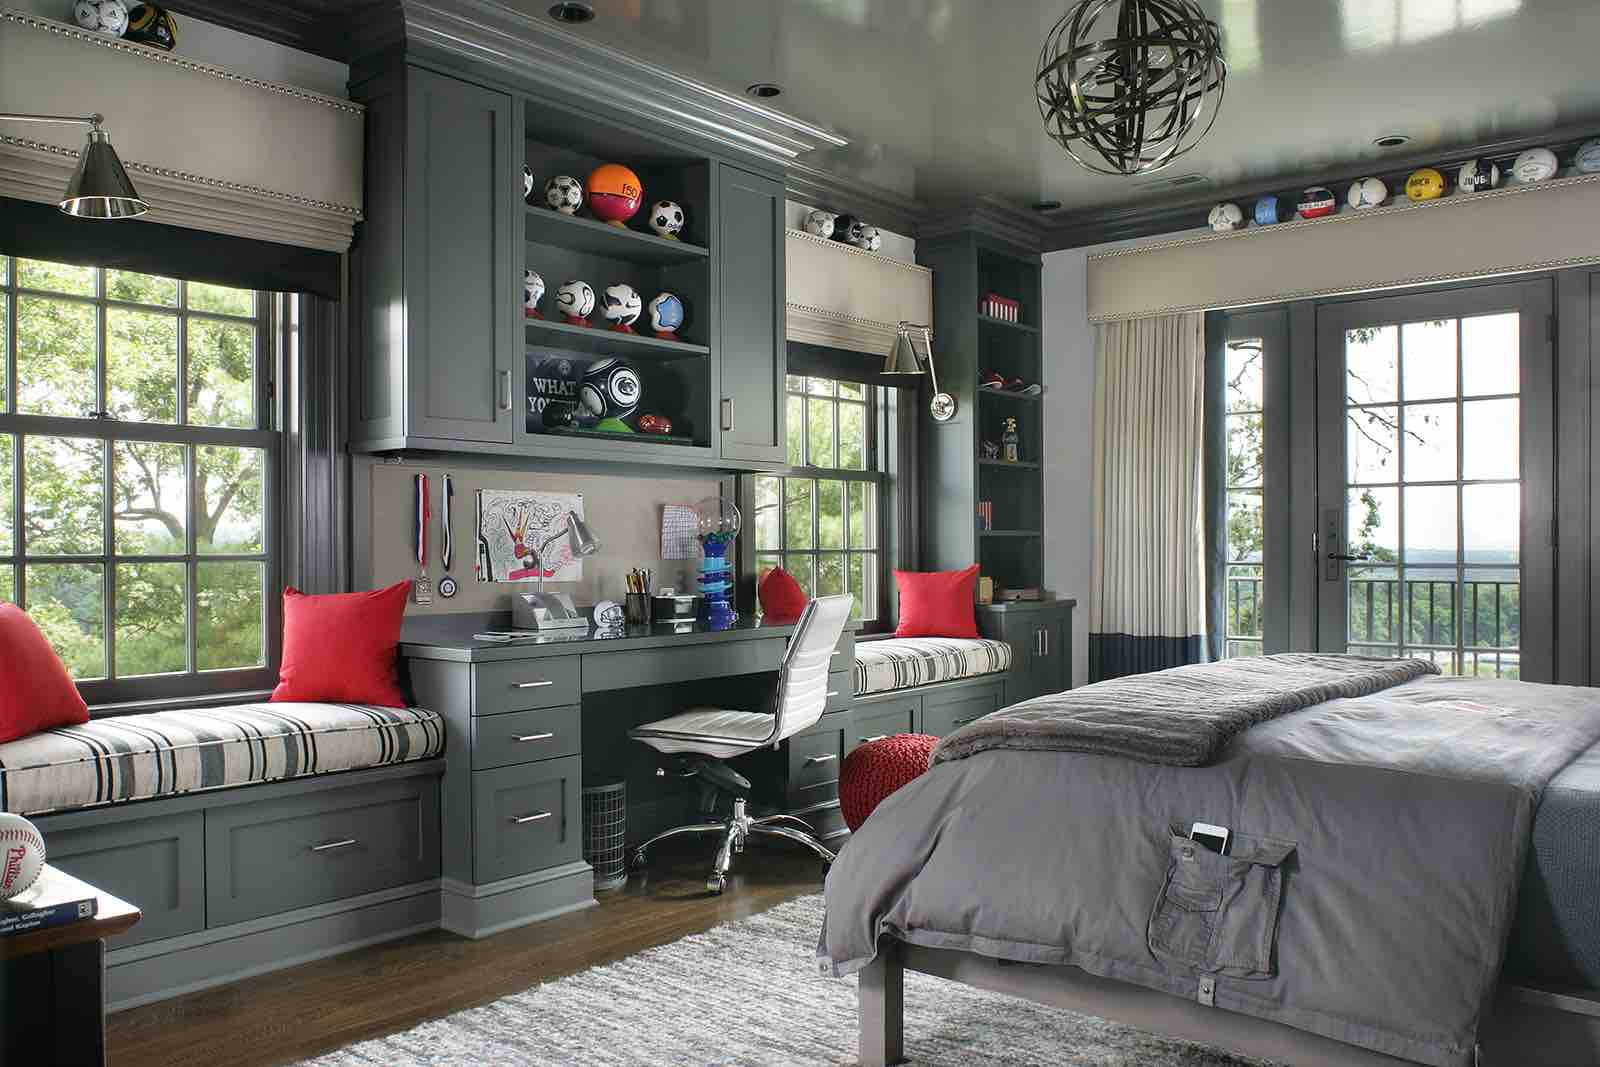 Decorating The Dream Dorm Room Valerie Grant Interiors